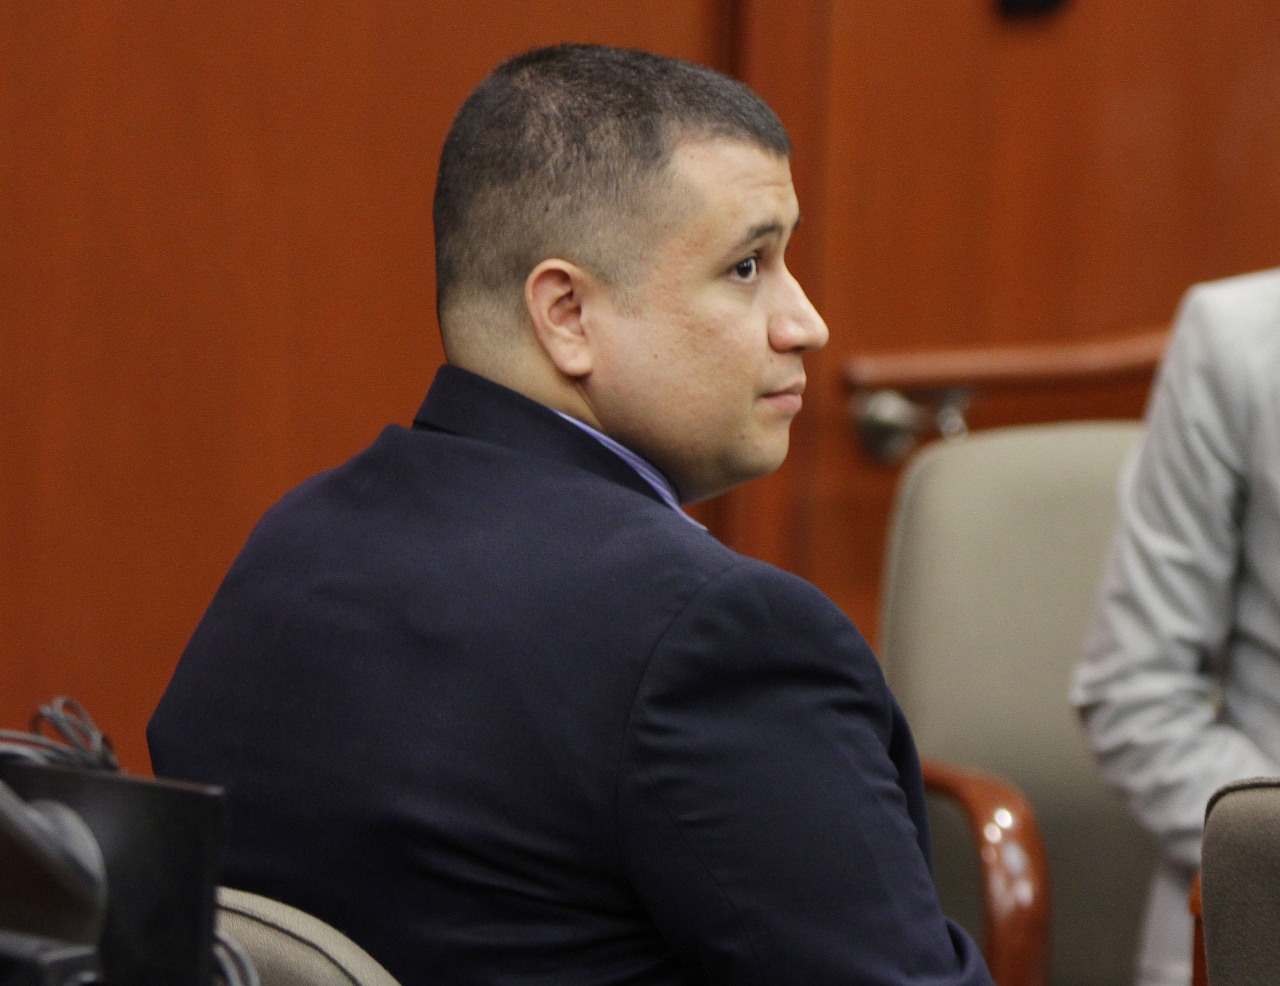 "A Florida judge on Tuesday denied a request from accused murderer George Zimmerman to let him remove his GPS monitoring device and travel freely in the state pending his trial next June in the shooting death of unarmed black teenager Trayvon Martin. Zimmerman, 29, has been confined to Seminole County under a $1 million bond since July, when a judge concluded that he had presented false information about his assets and was a flight risk. Zimmerman and his wife, Shellie, who is charged with perjury for allegedly lying to the judge about the couple's finances, live in hiding and ""in fear of violence,"" according to a 74-page motion filed by his lawyer, Mark O'Mara. READ ON: Florida judge keeps GPS monitor on Trayvon Martin's killer"